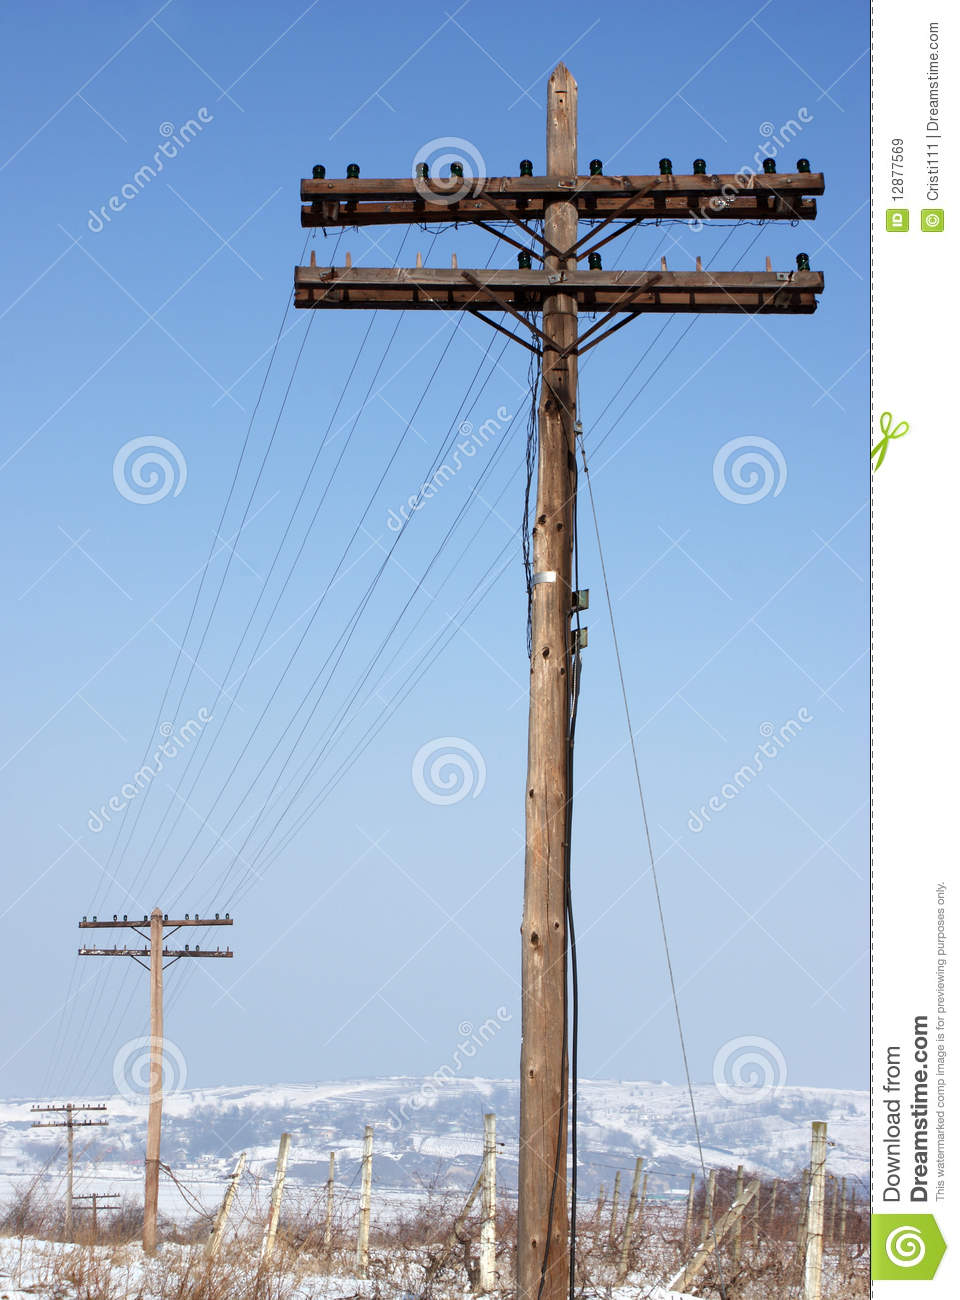 Power Lines Cliparts furthermore Fallout 4 Tips That Will Save You A Ton Of Headache 1639218 besides 3 Sector Etfs That Survived The Summer besides Royalty Free Stock Images Ancient Wooden Telegraph Pylons Image12877569 furthermore 5233. on wire pylons